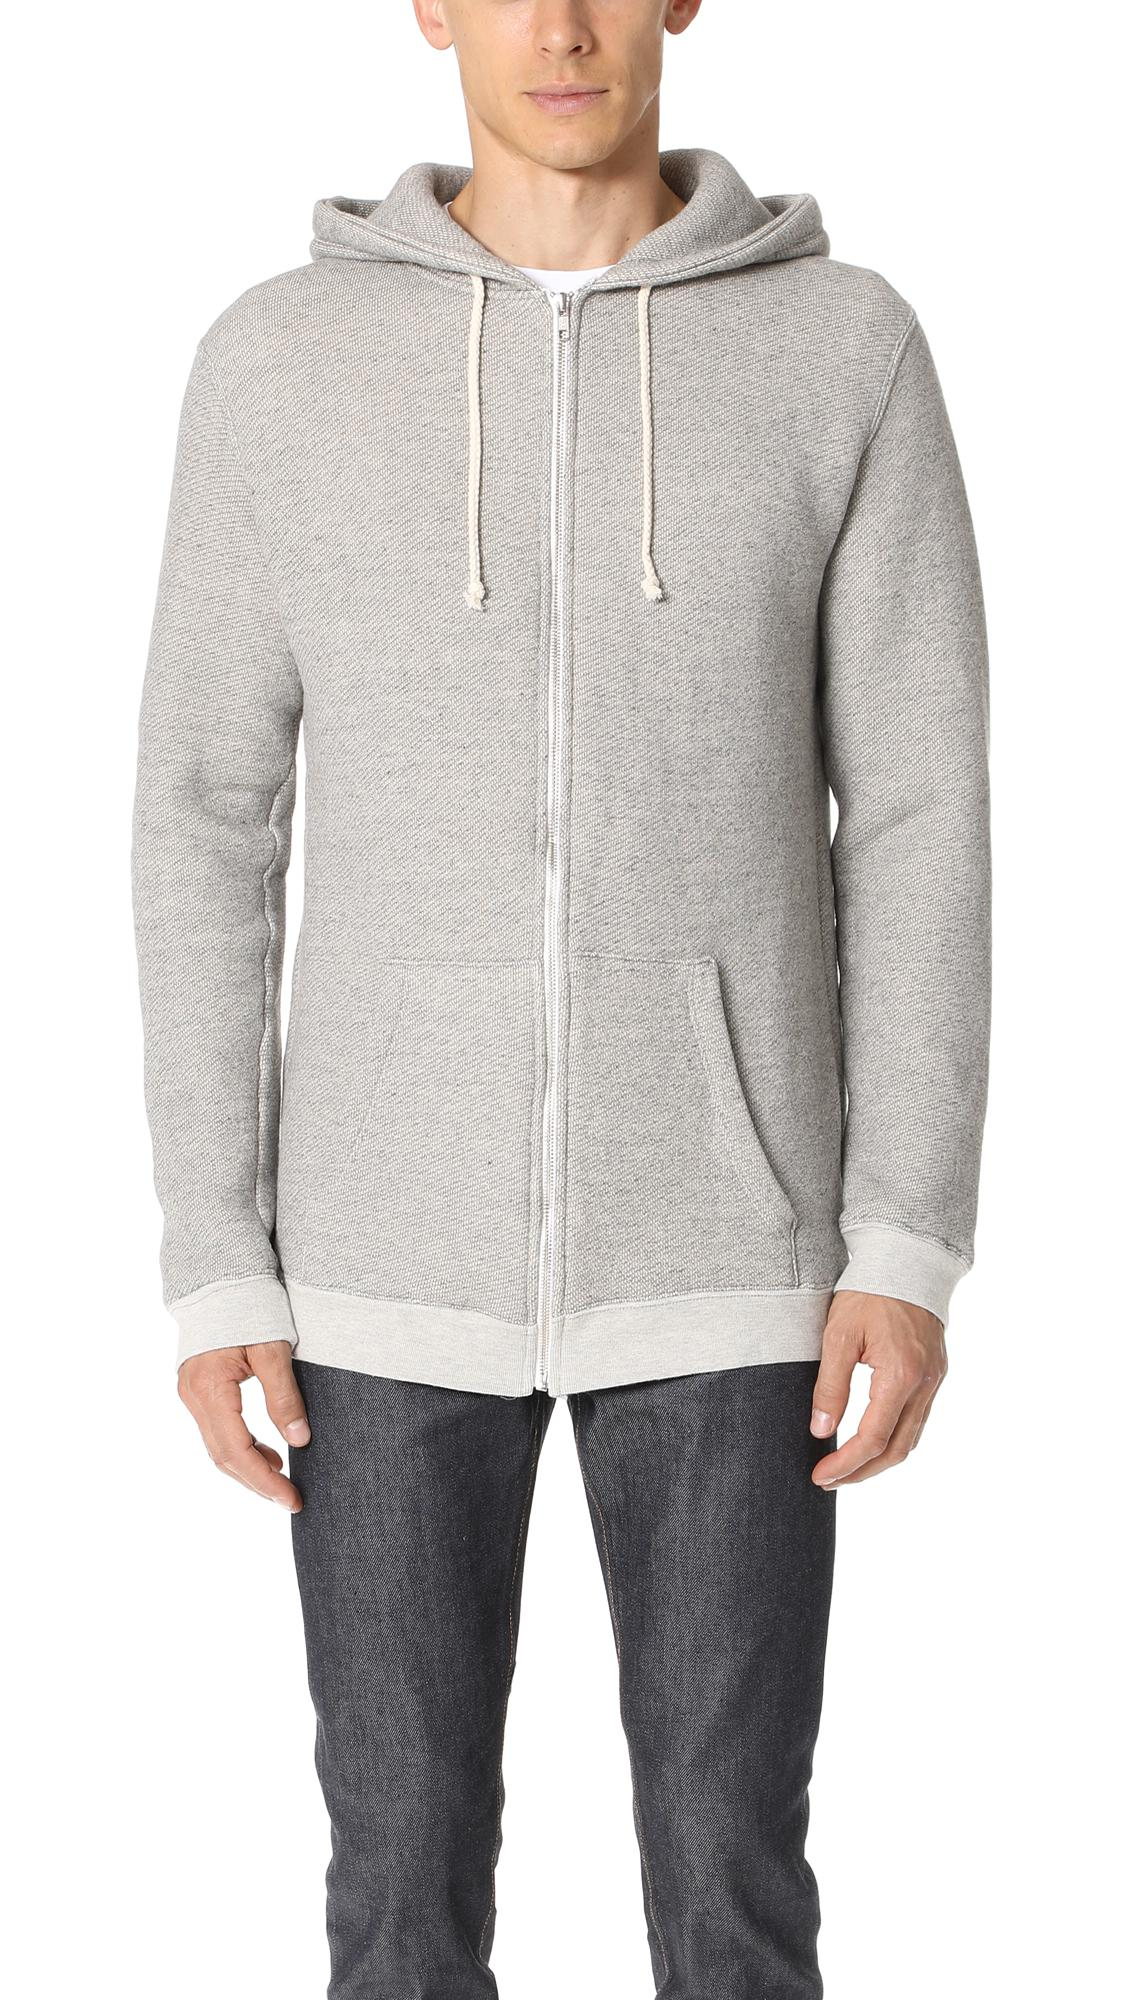 Lyst - Mollusk Zip Hoodie in Gray for Men